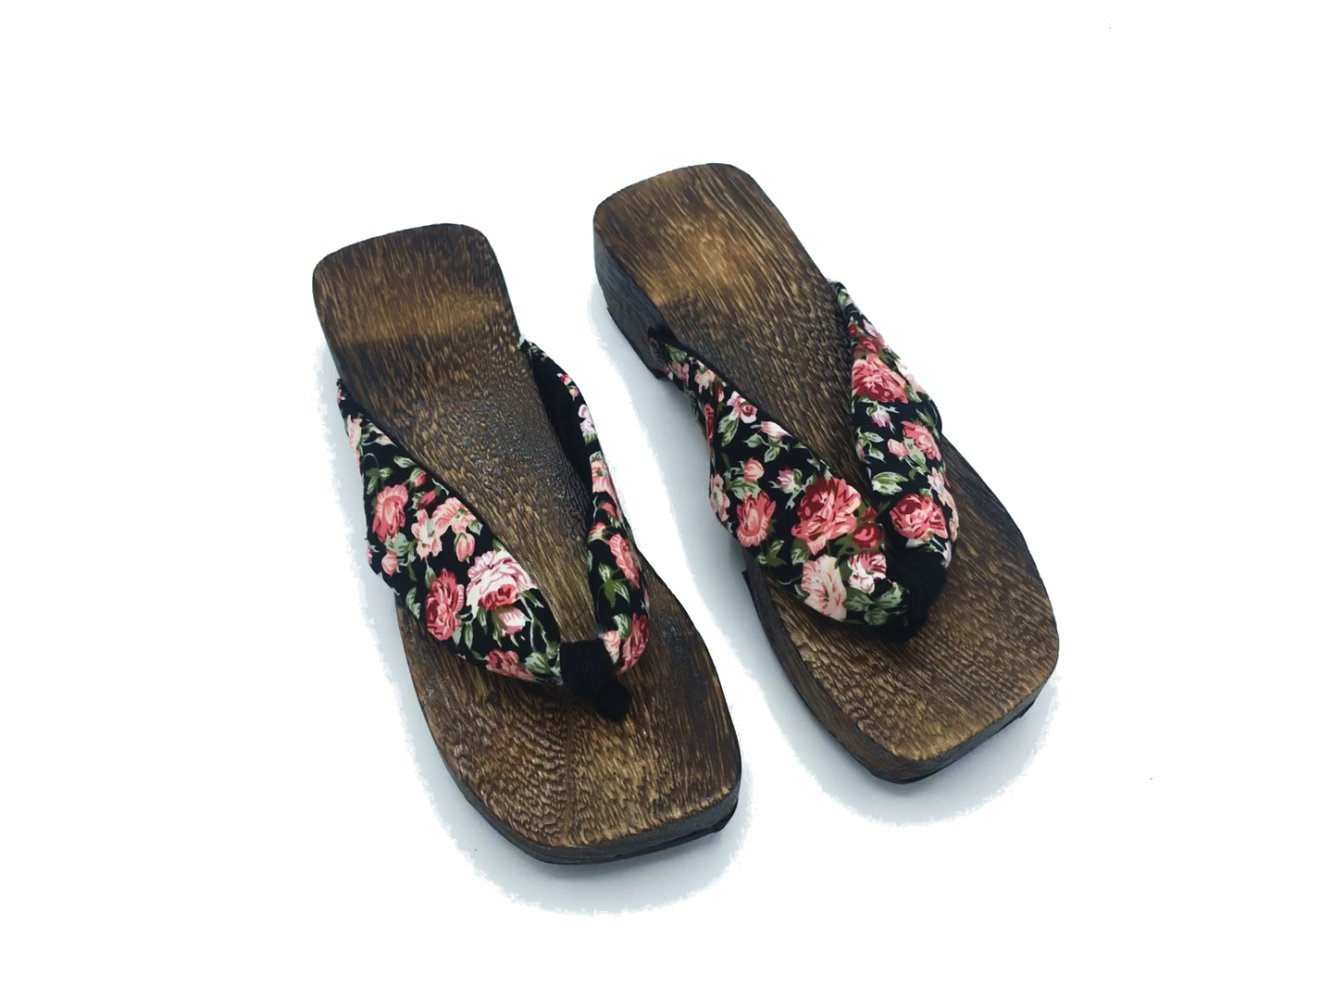 Womens Japanese Style Wooden Floral High Heal Geta Sandals (39(US8.5), Floral Print-1)